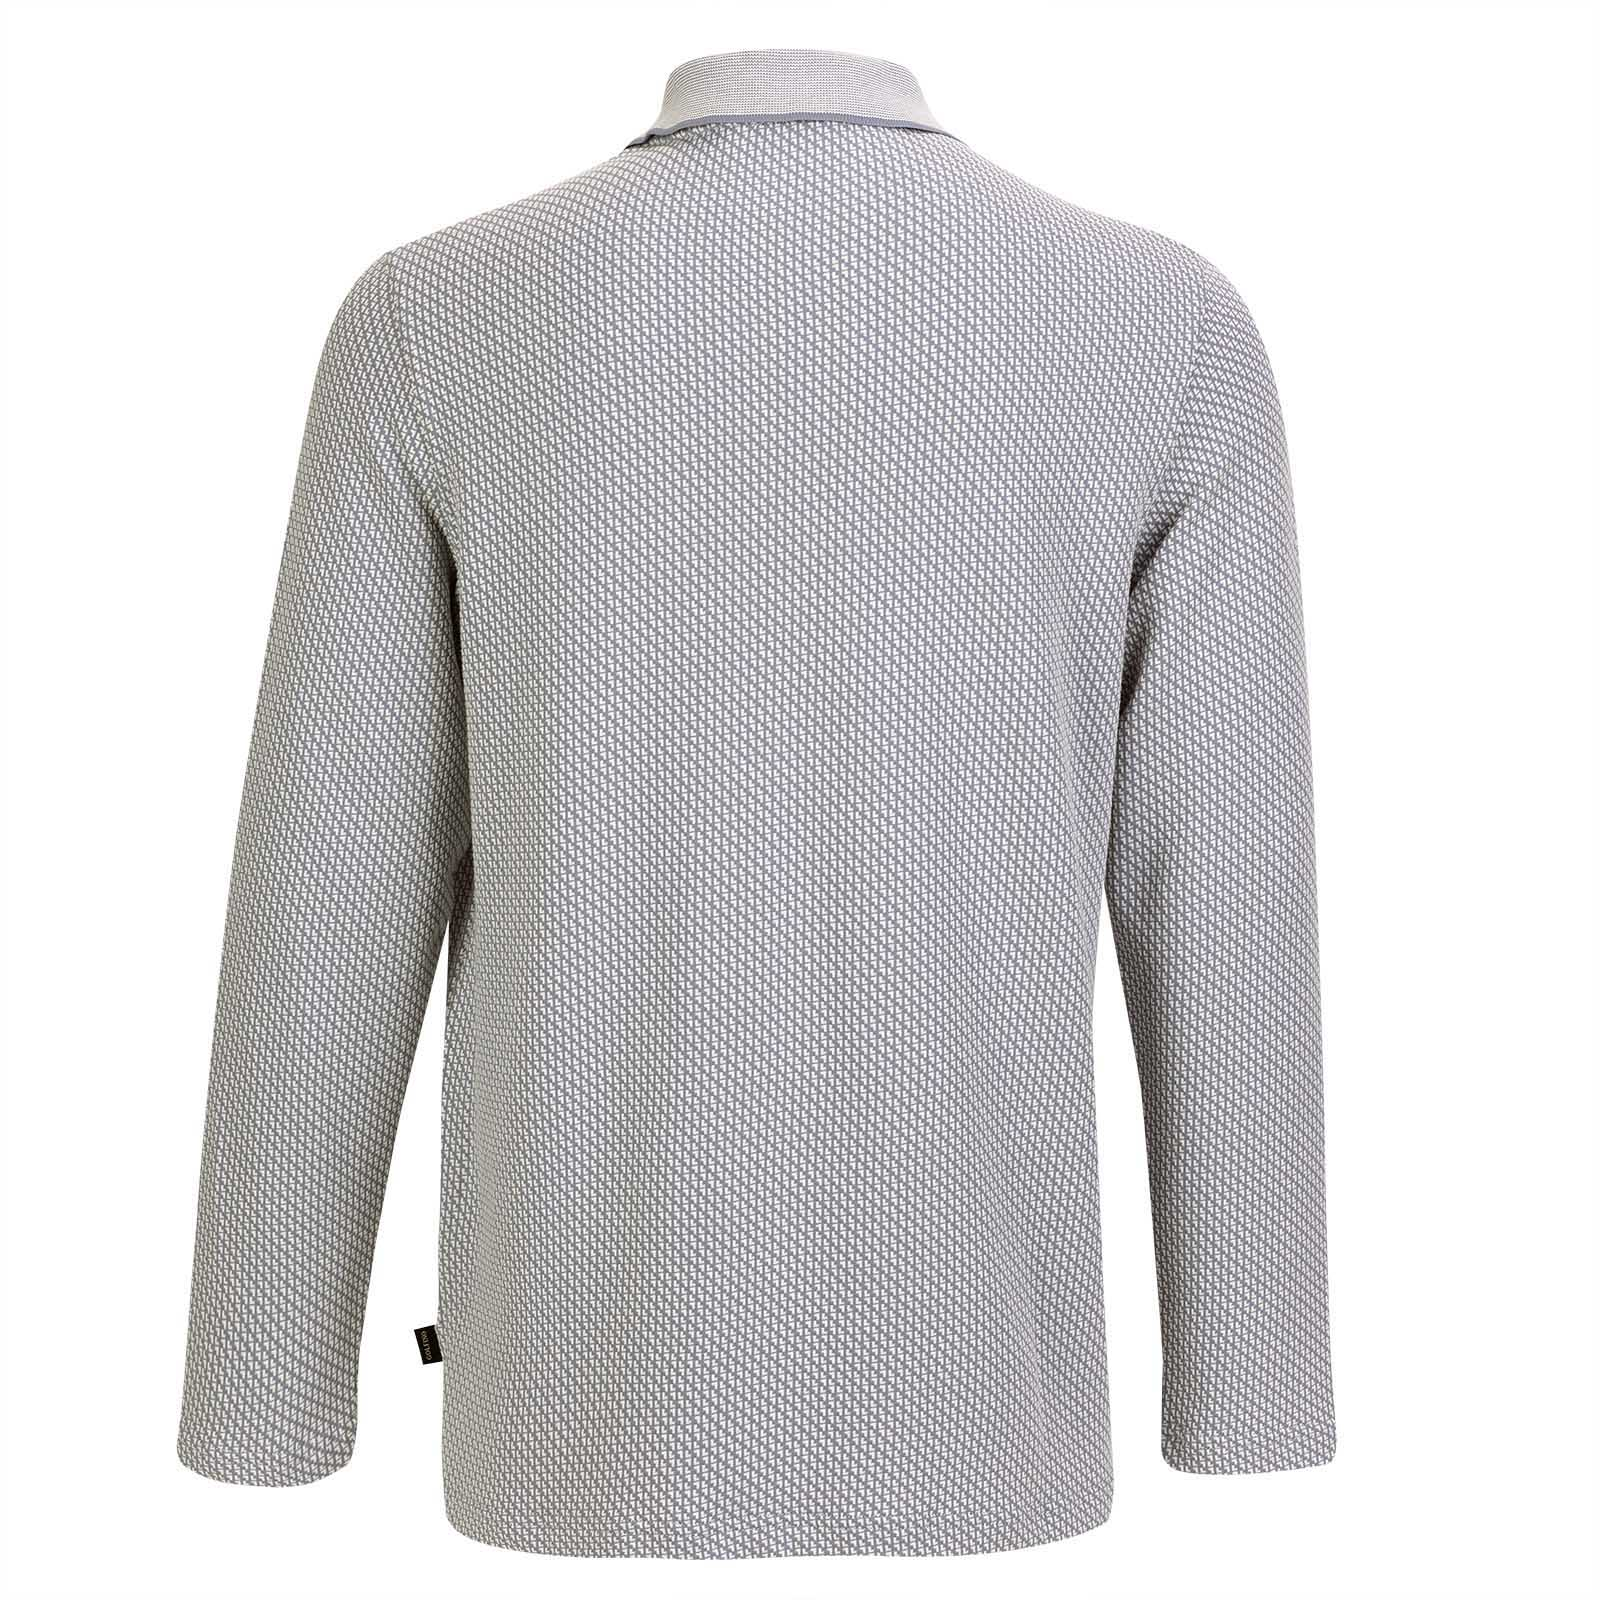 Blaser Troyer Functional Thermal Top SALE